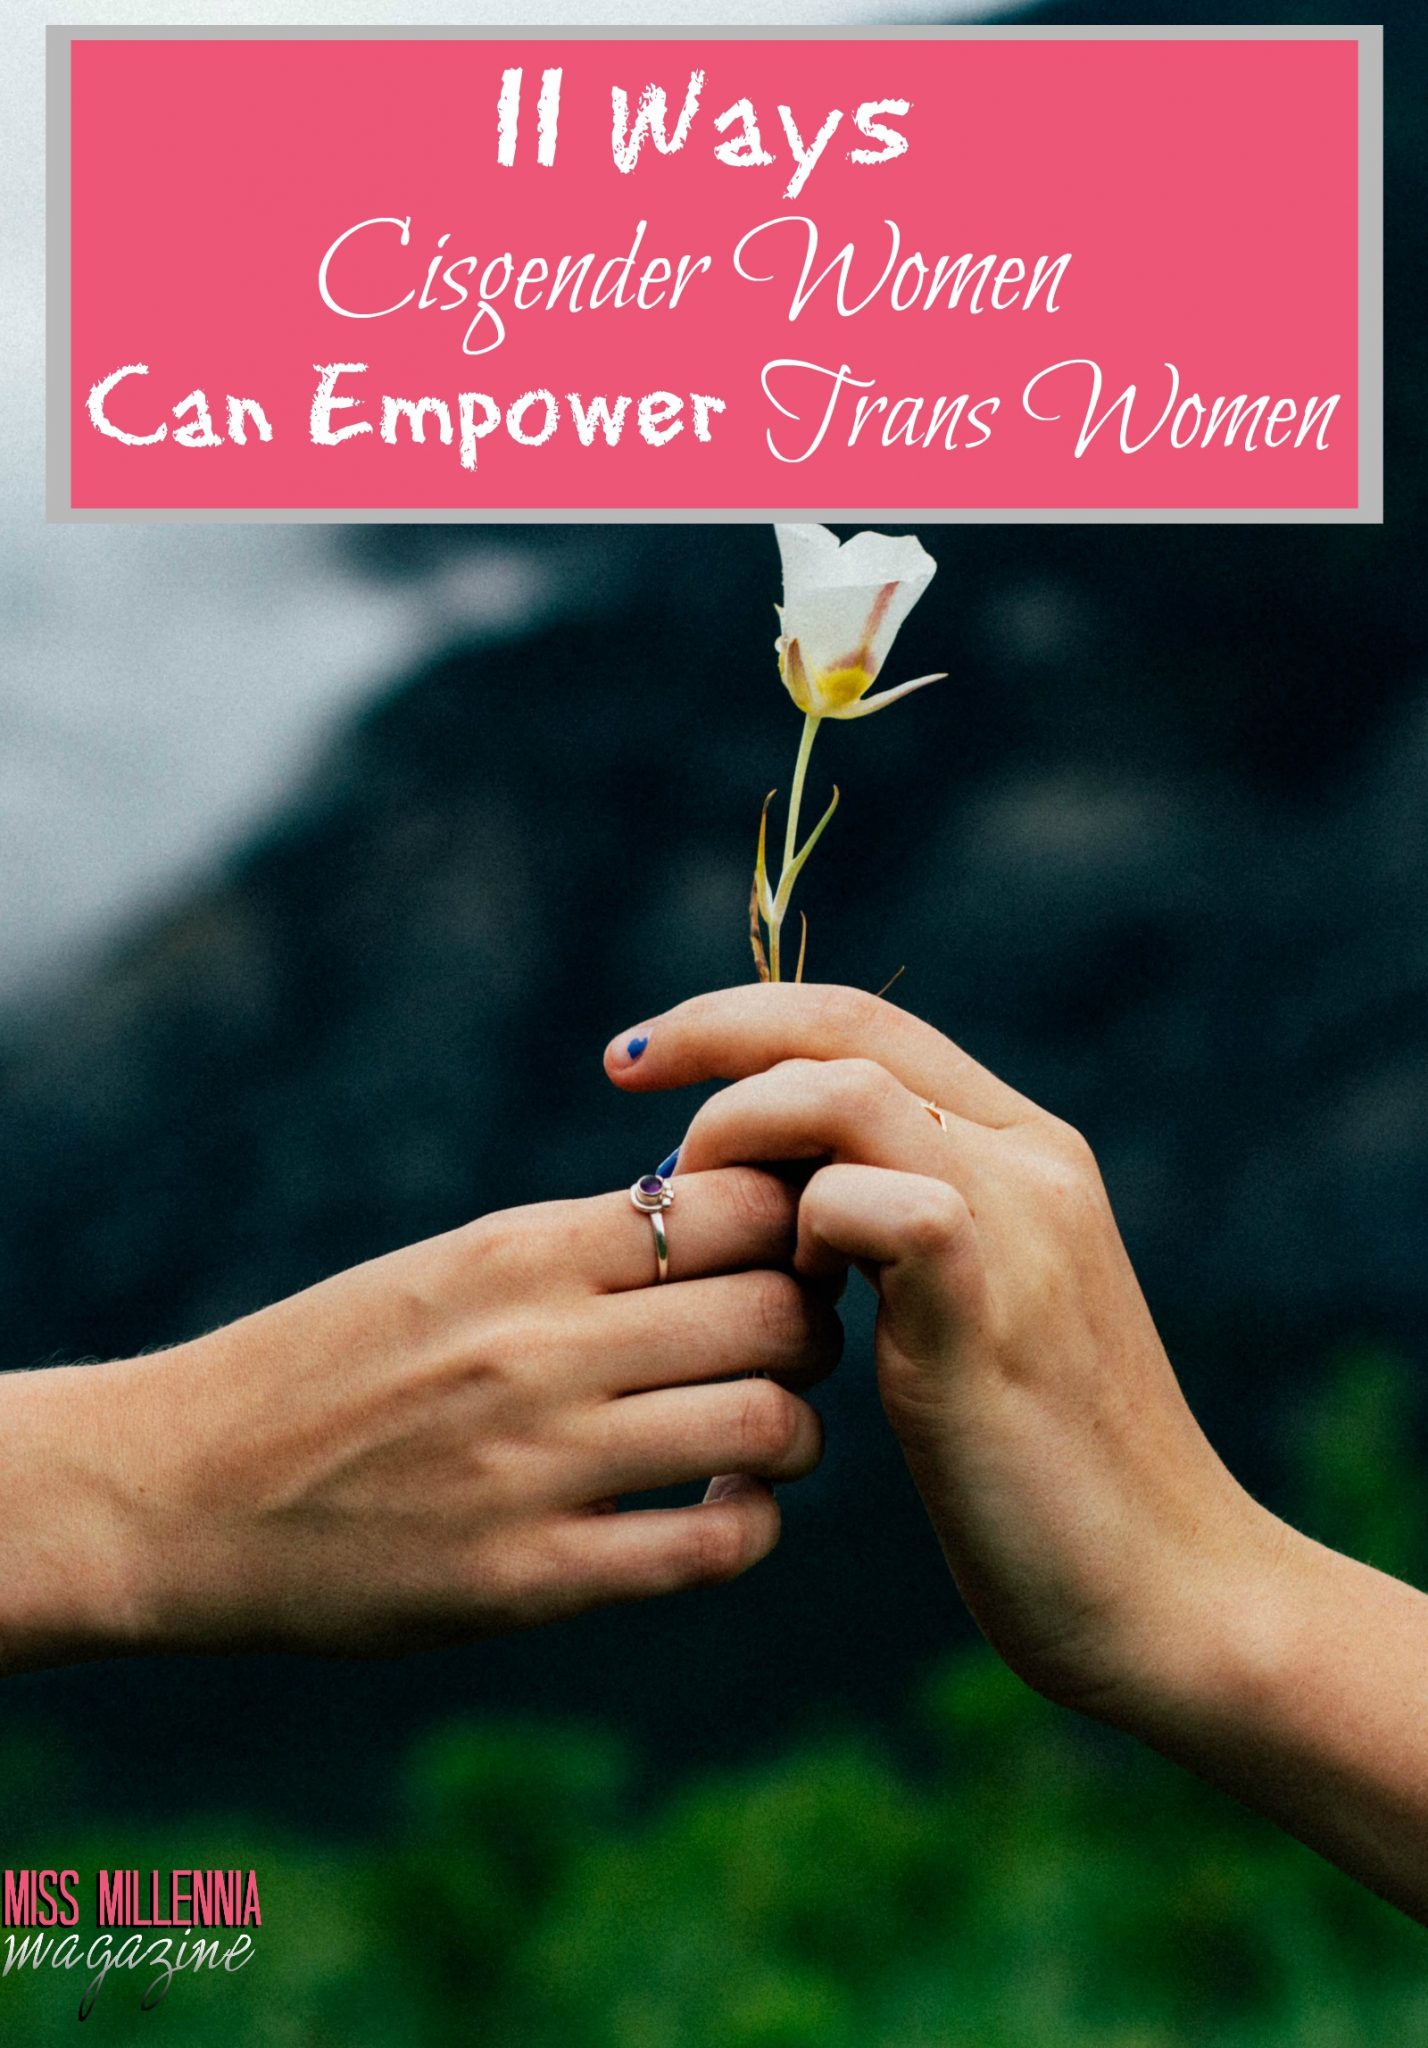 11 Ways Cisgender Women Can Empower Trans Women